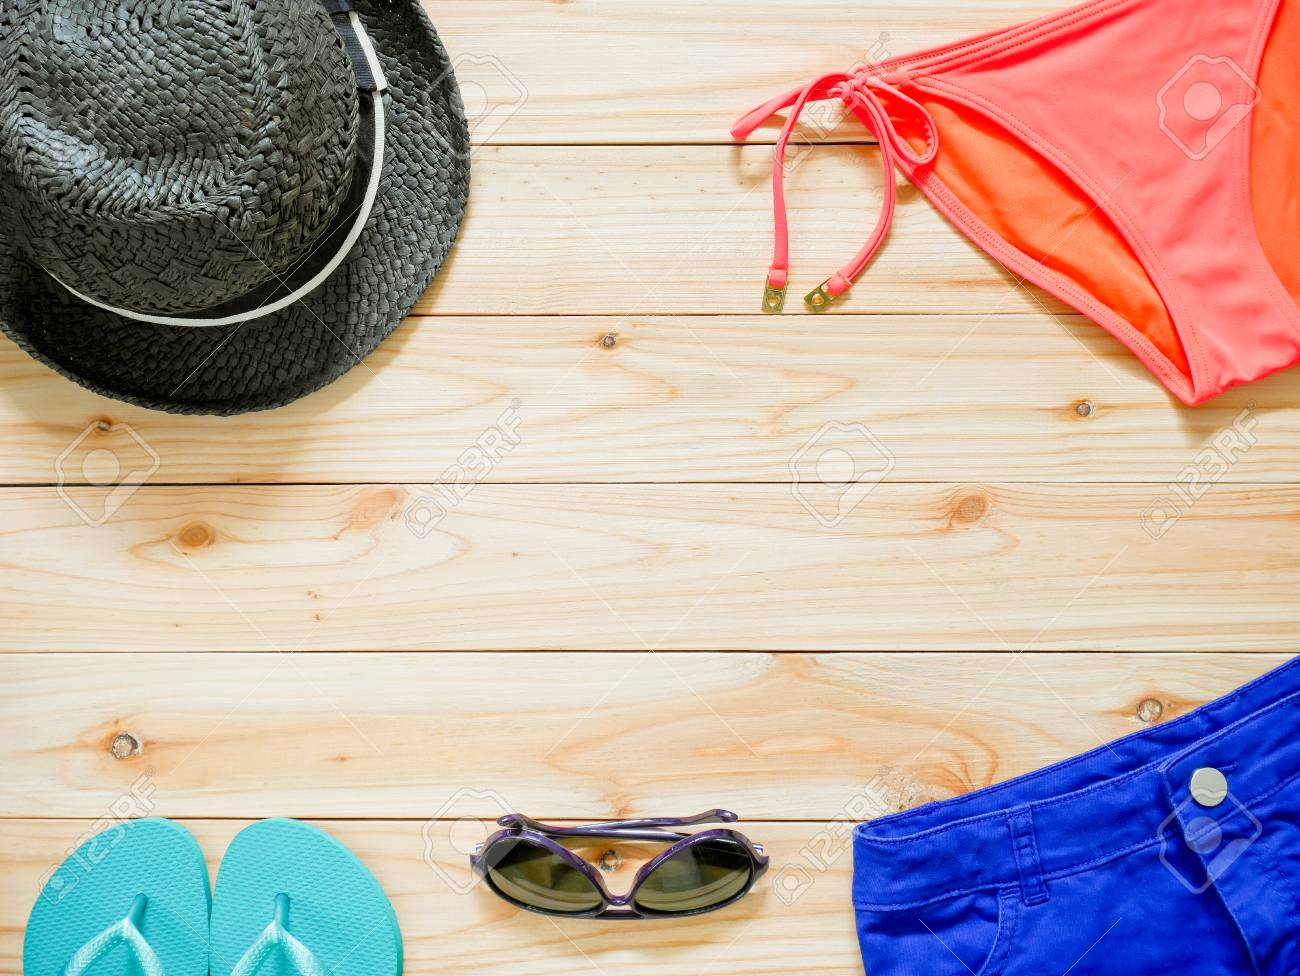 4b82afaf9a Stock Photo - Women's beachwear and accessories on wooden background. Beach  clothing concept.